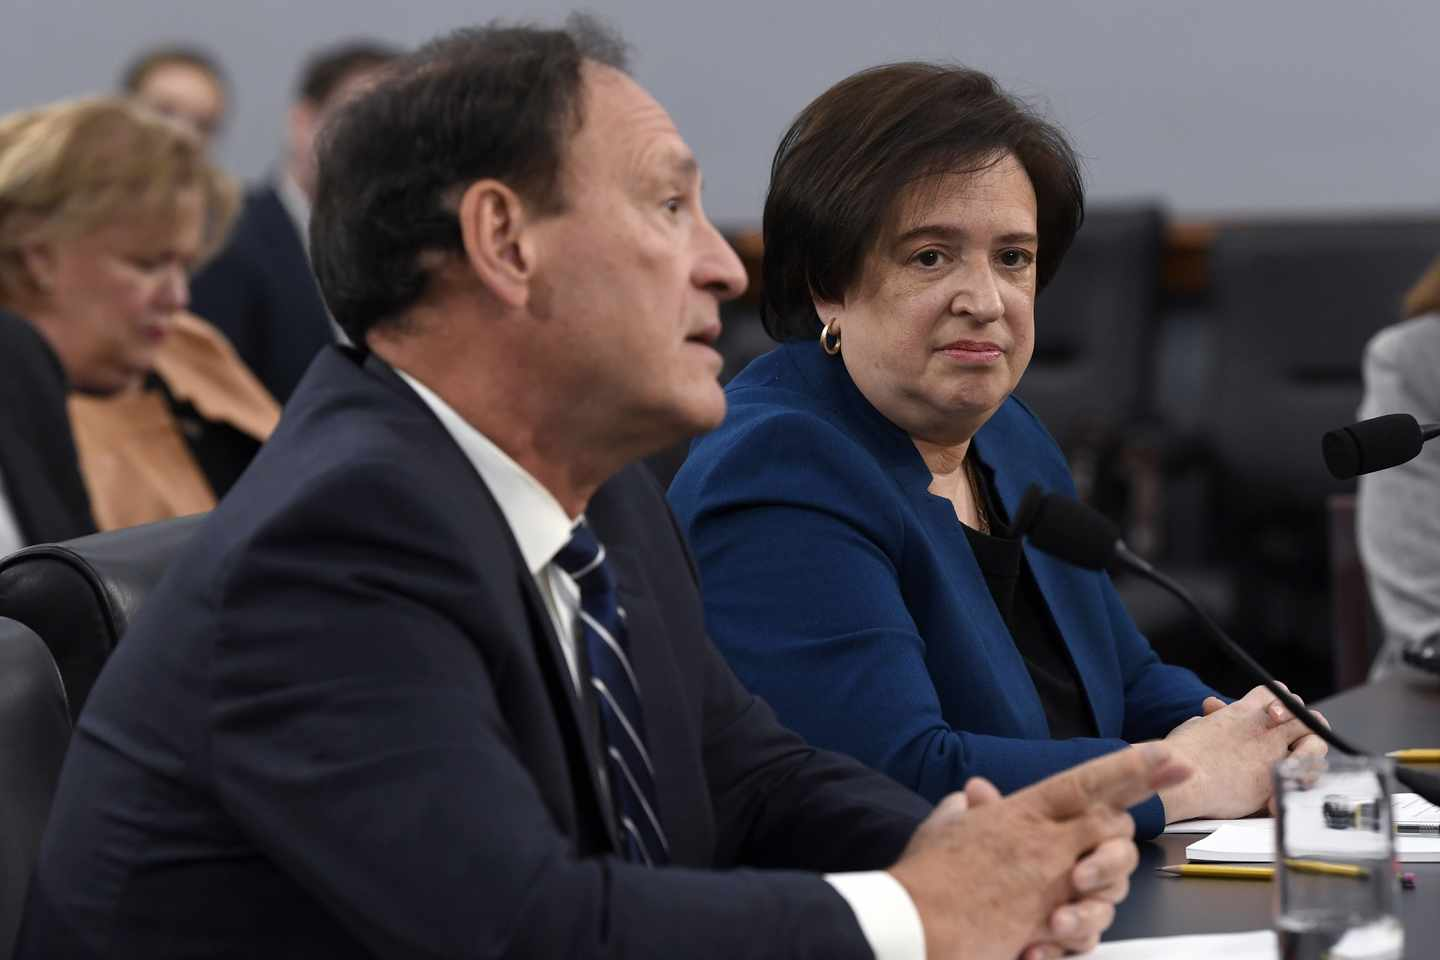 Alito's Strategic Vote Signals Reining In of 'Law by Regulation'